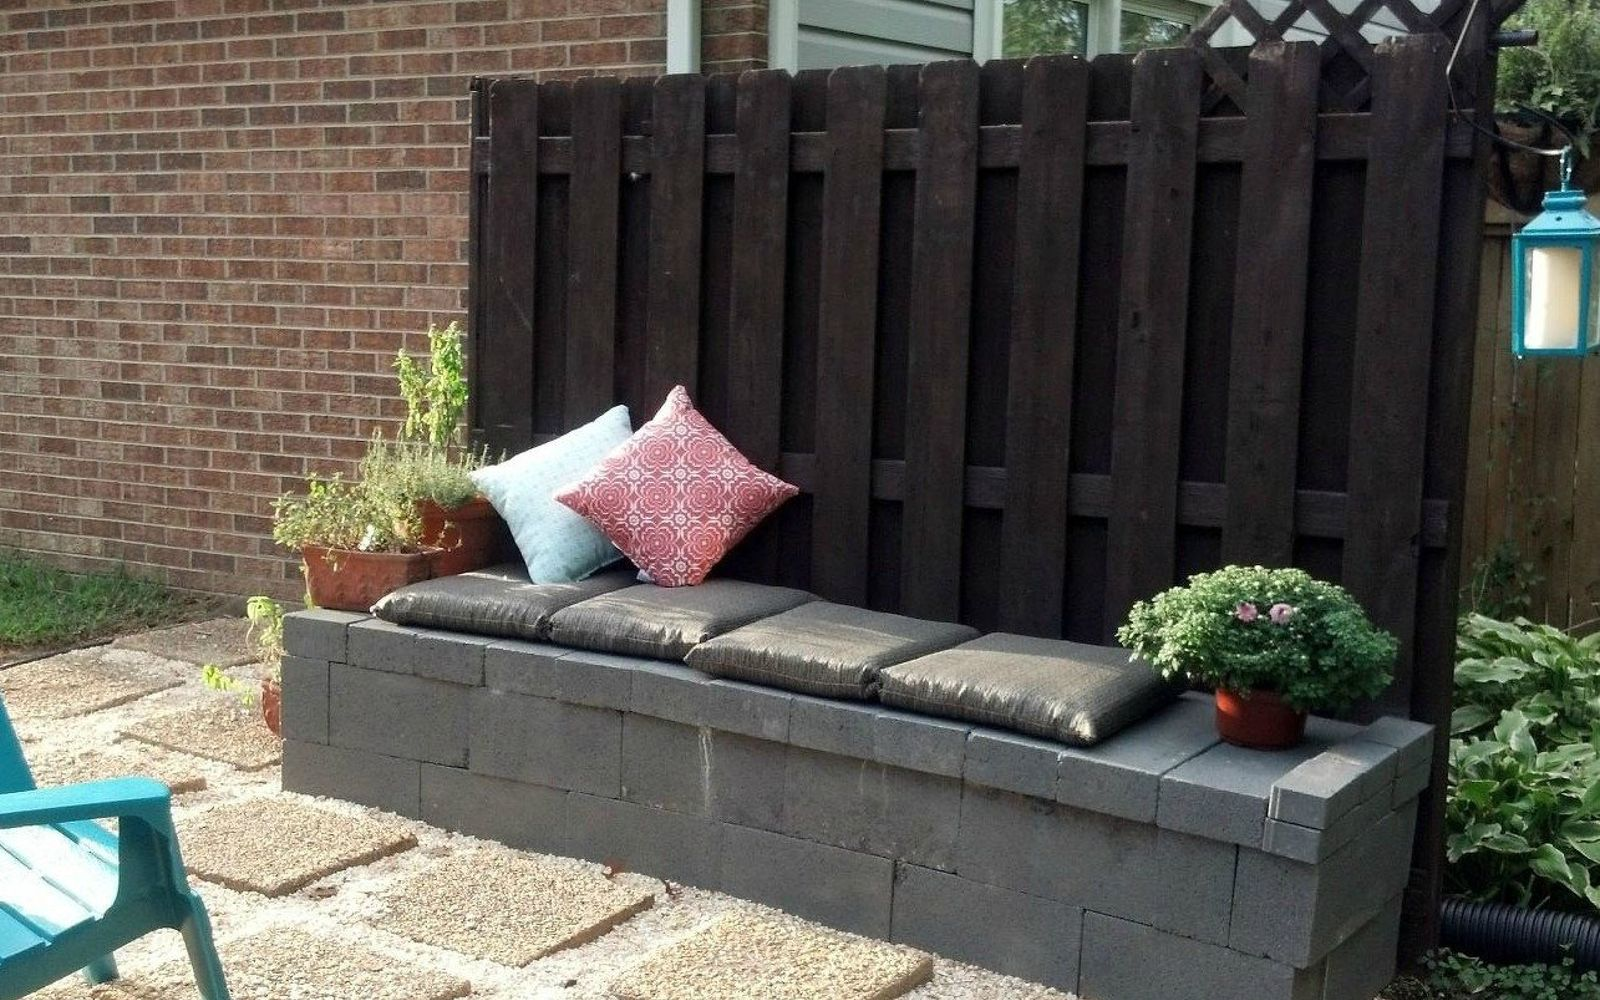 10 Genius Ways to Use Cinder Blocks in Your Garden